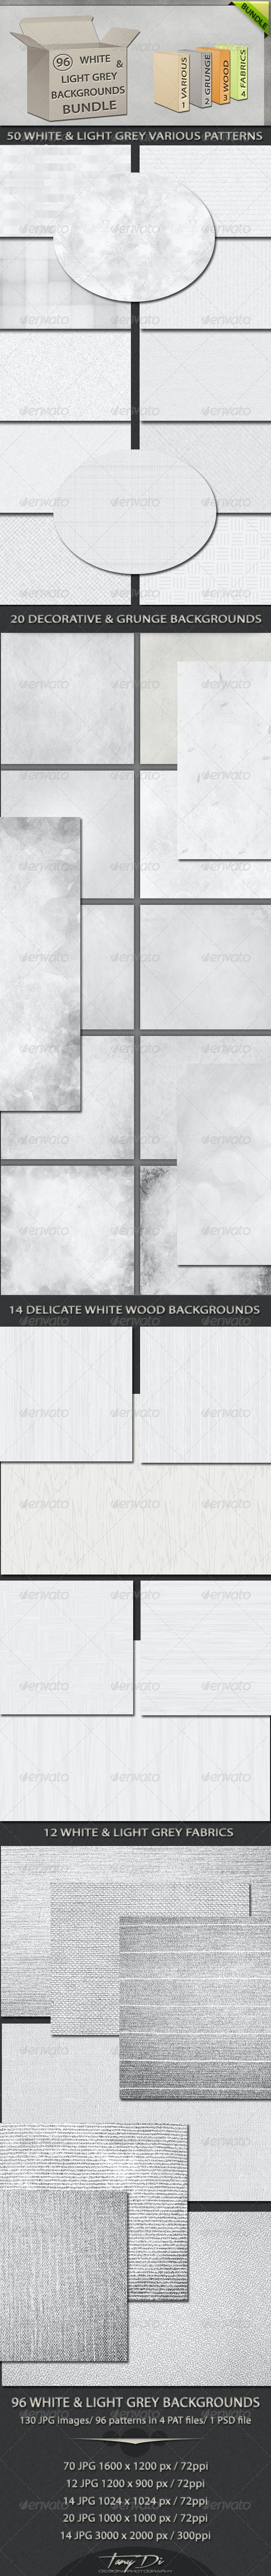 96 White and Light Grey Backgrounds Bundle - Patterns Backgrounds